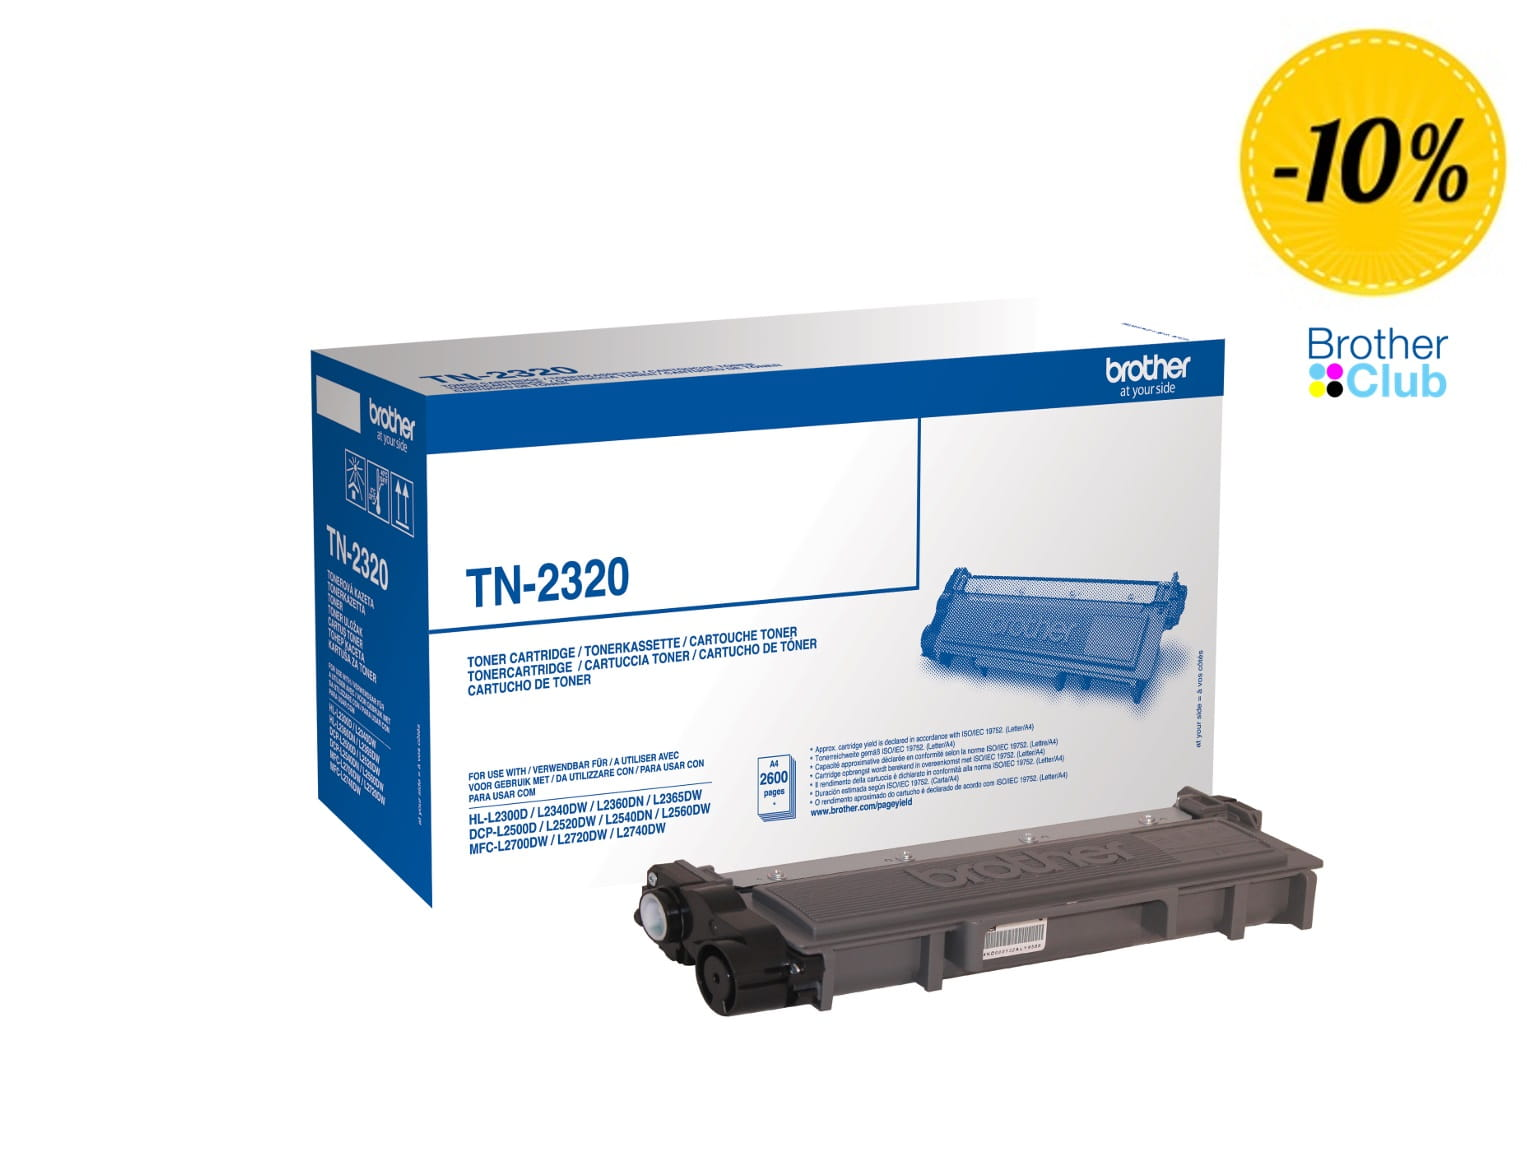 Toner originale nero Brother TN2320 con 10% di sconto